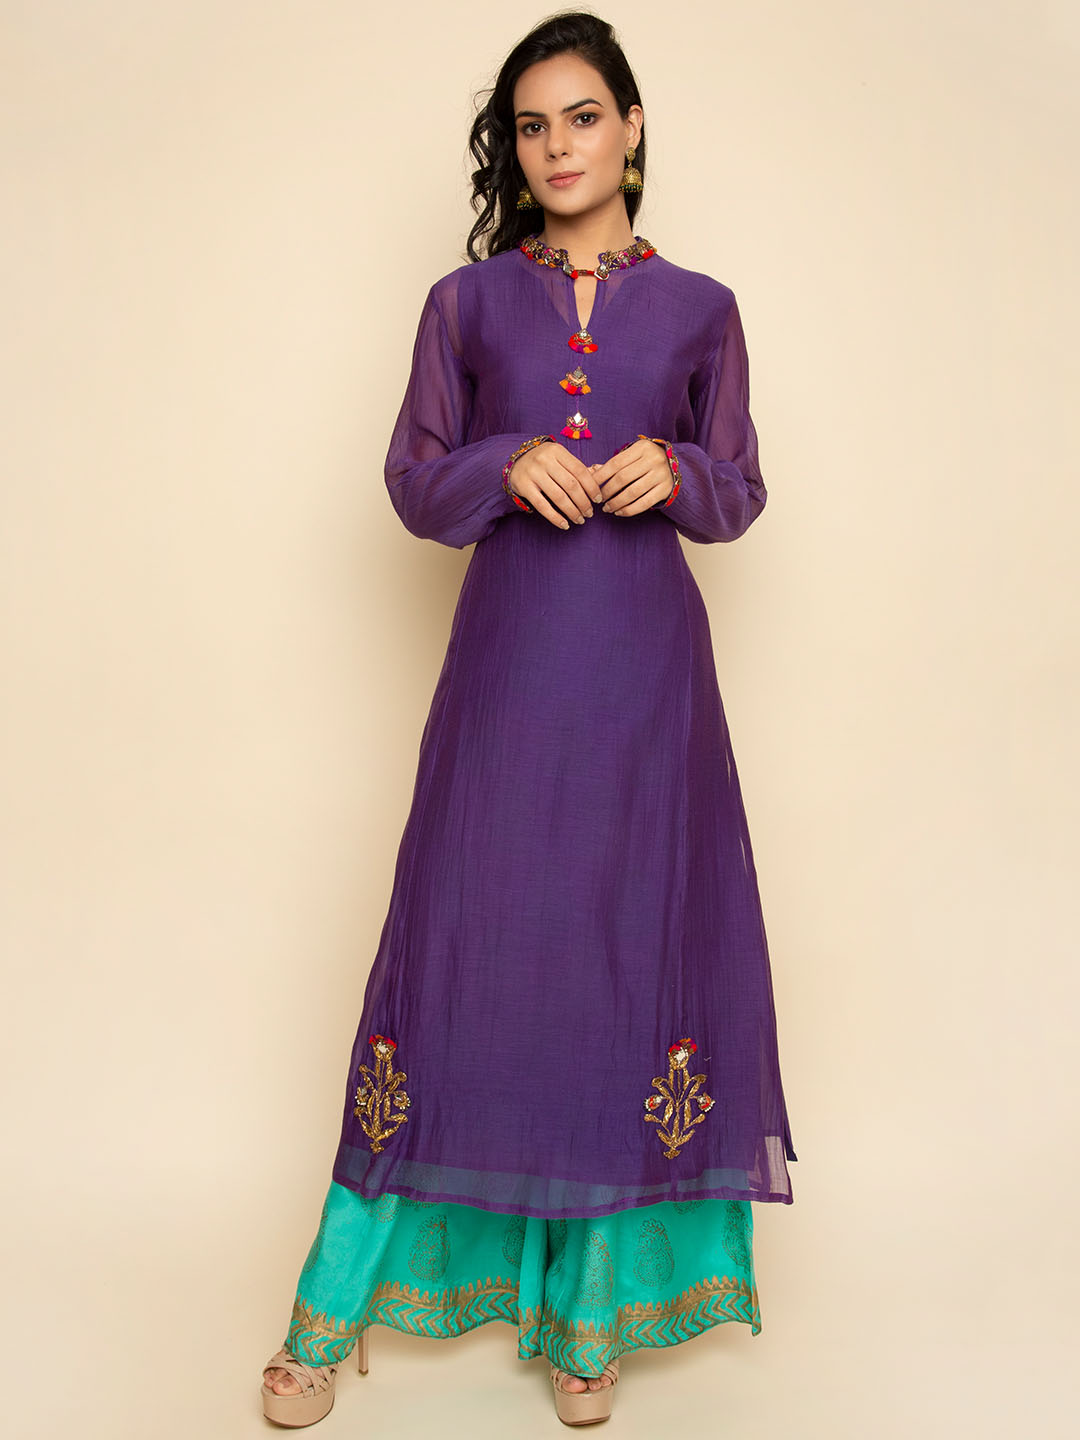 Chanderi hand Embroidery Suit